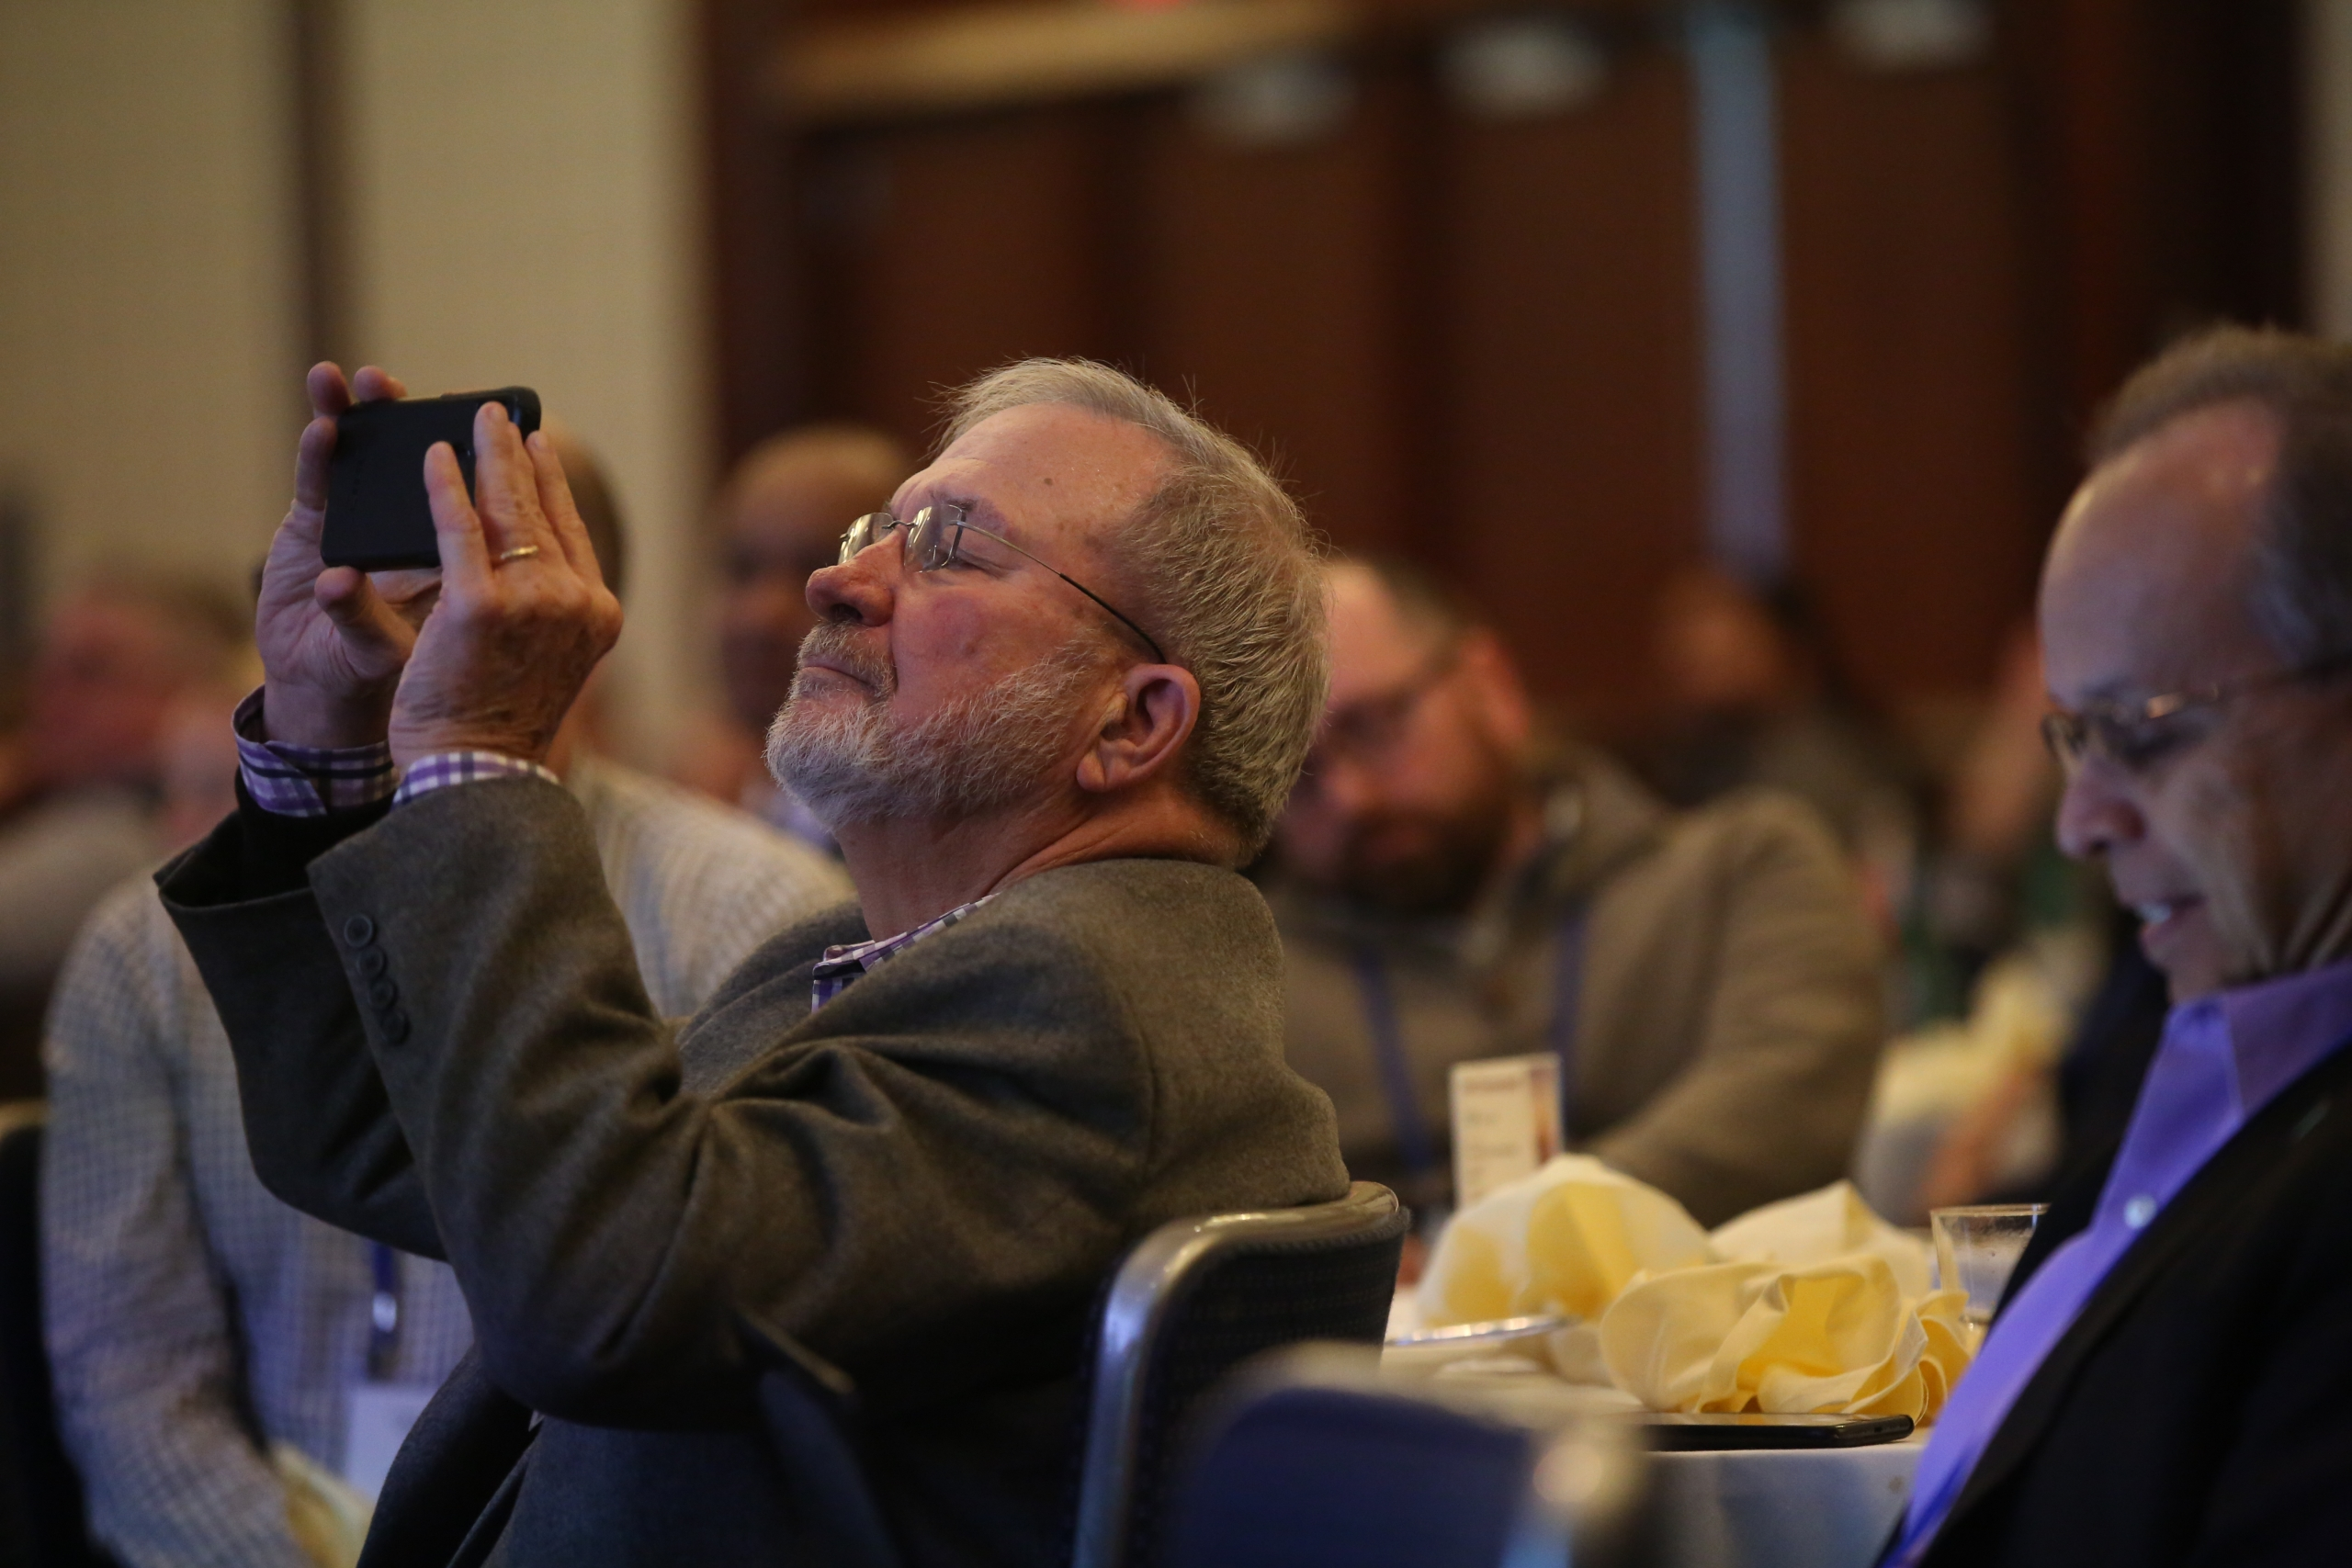 A man uses his phone to snaps a photo in the middle of a presentation